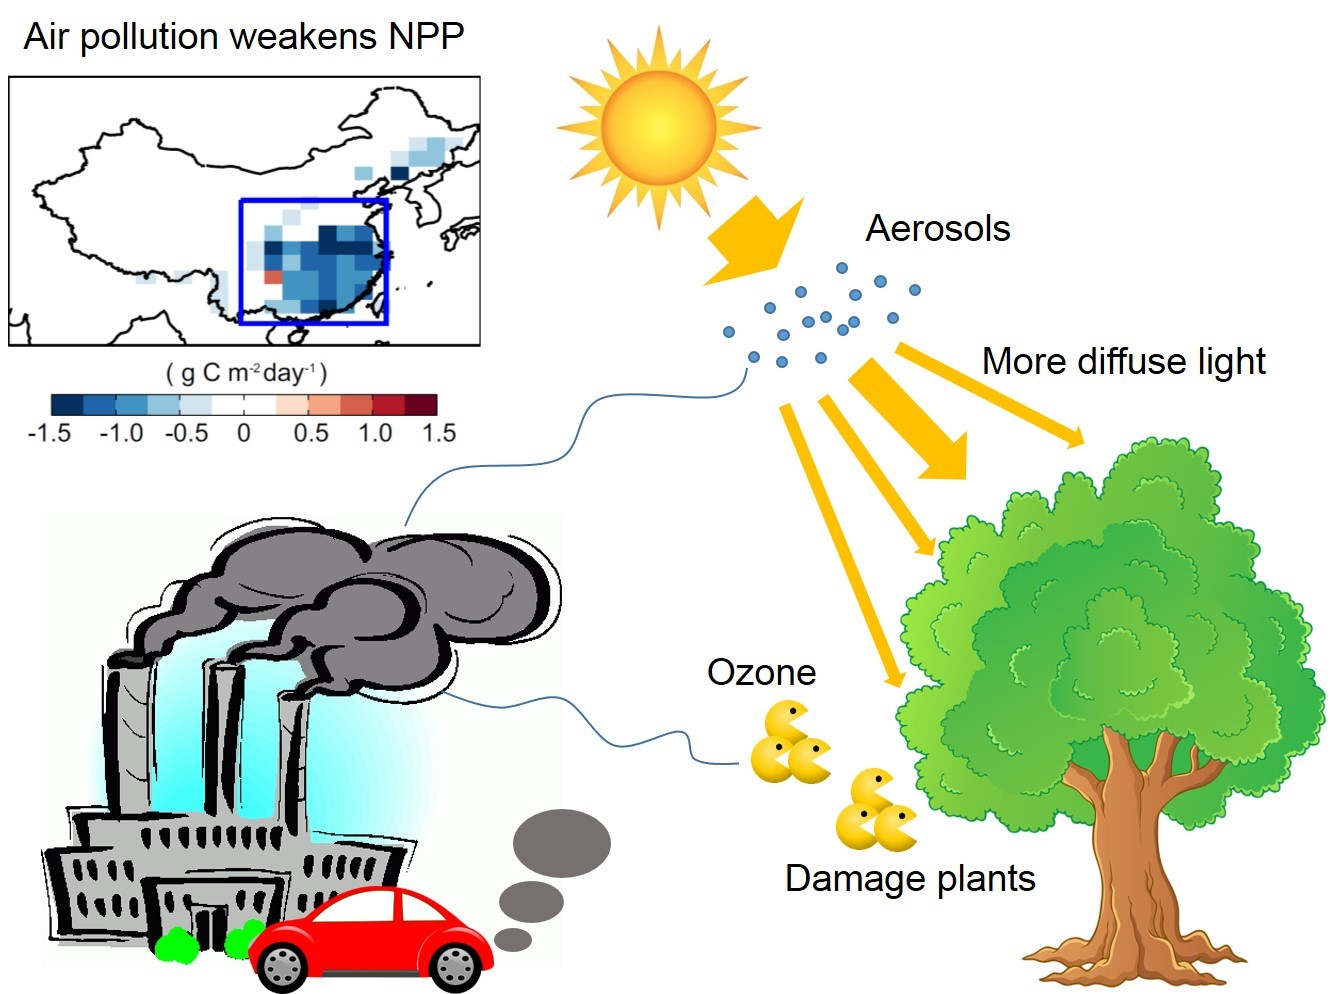 Ozone And Haze Pollution Weakens Land Carbon Uptake In